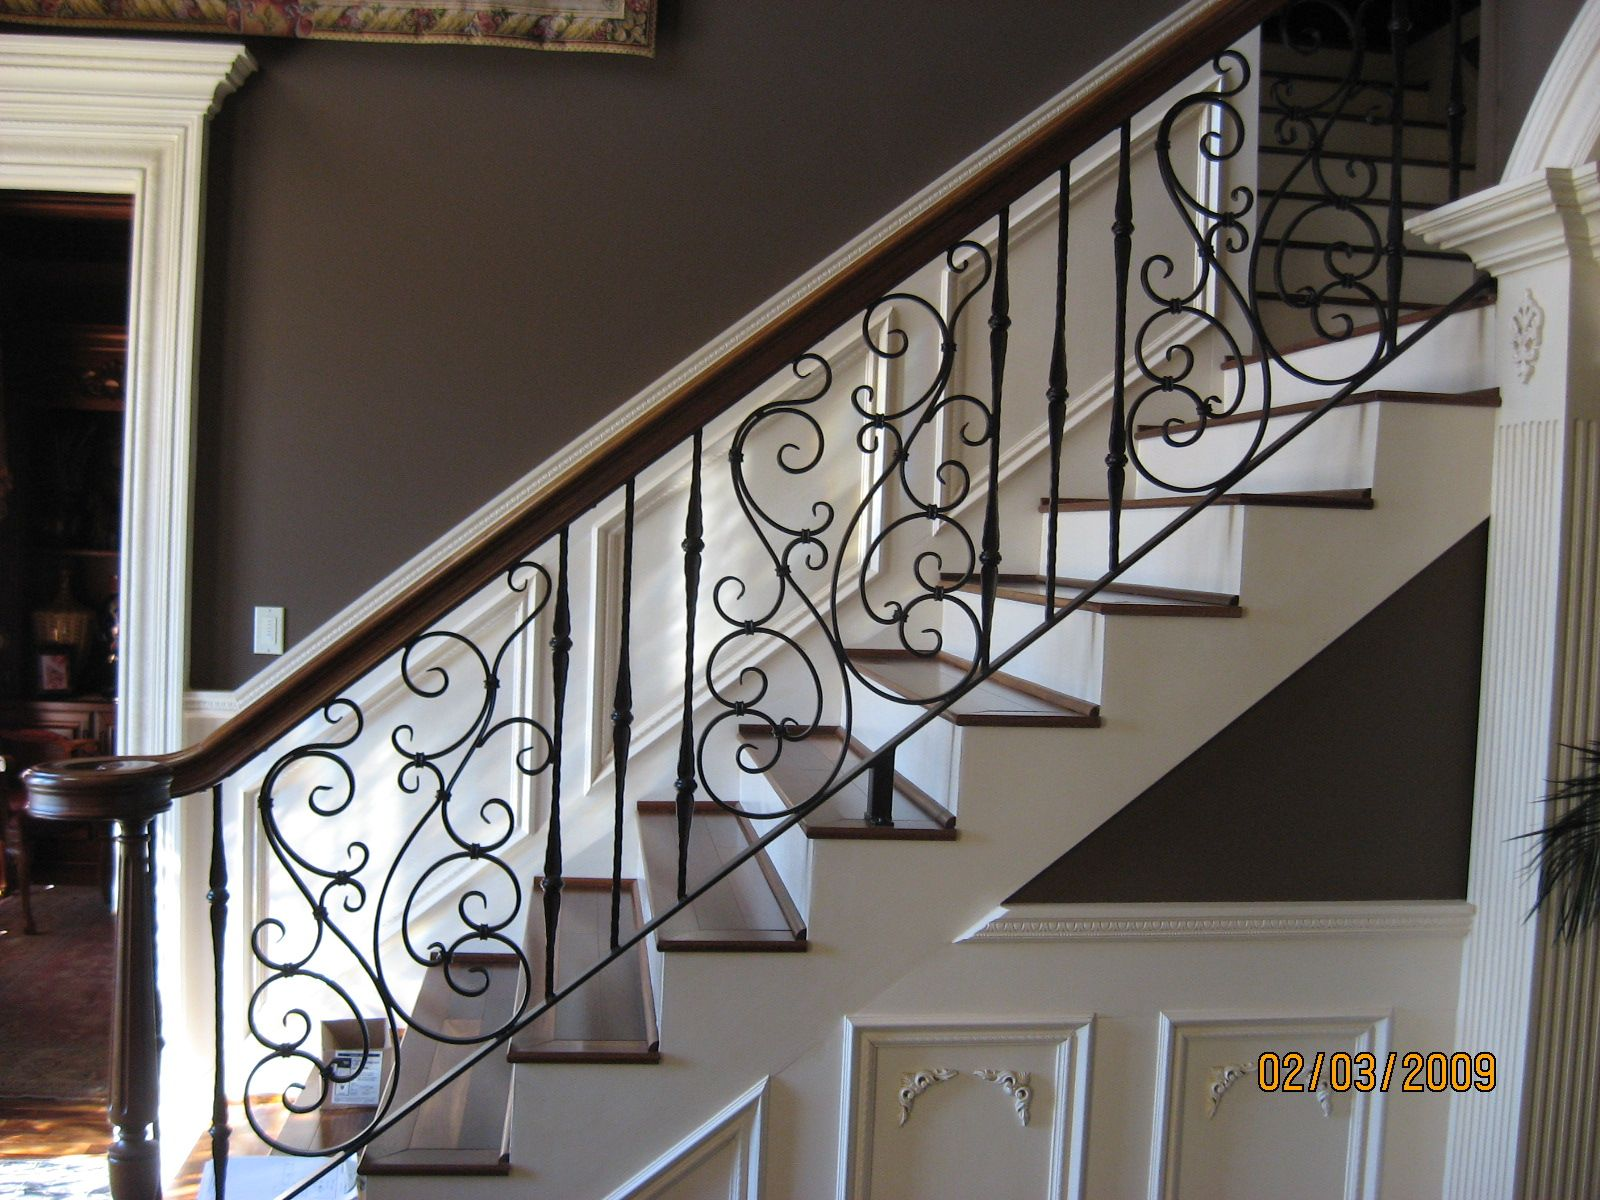 Rai0504 Wrought Iron Railing Wrought Iron Stair Railing Modern Stair Railing Wrought Iron Stairs